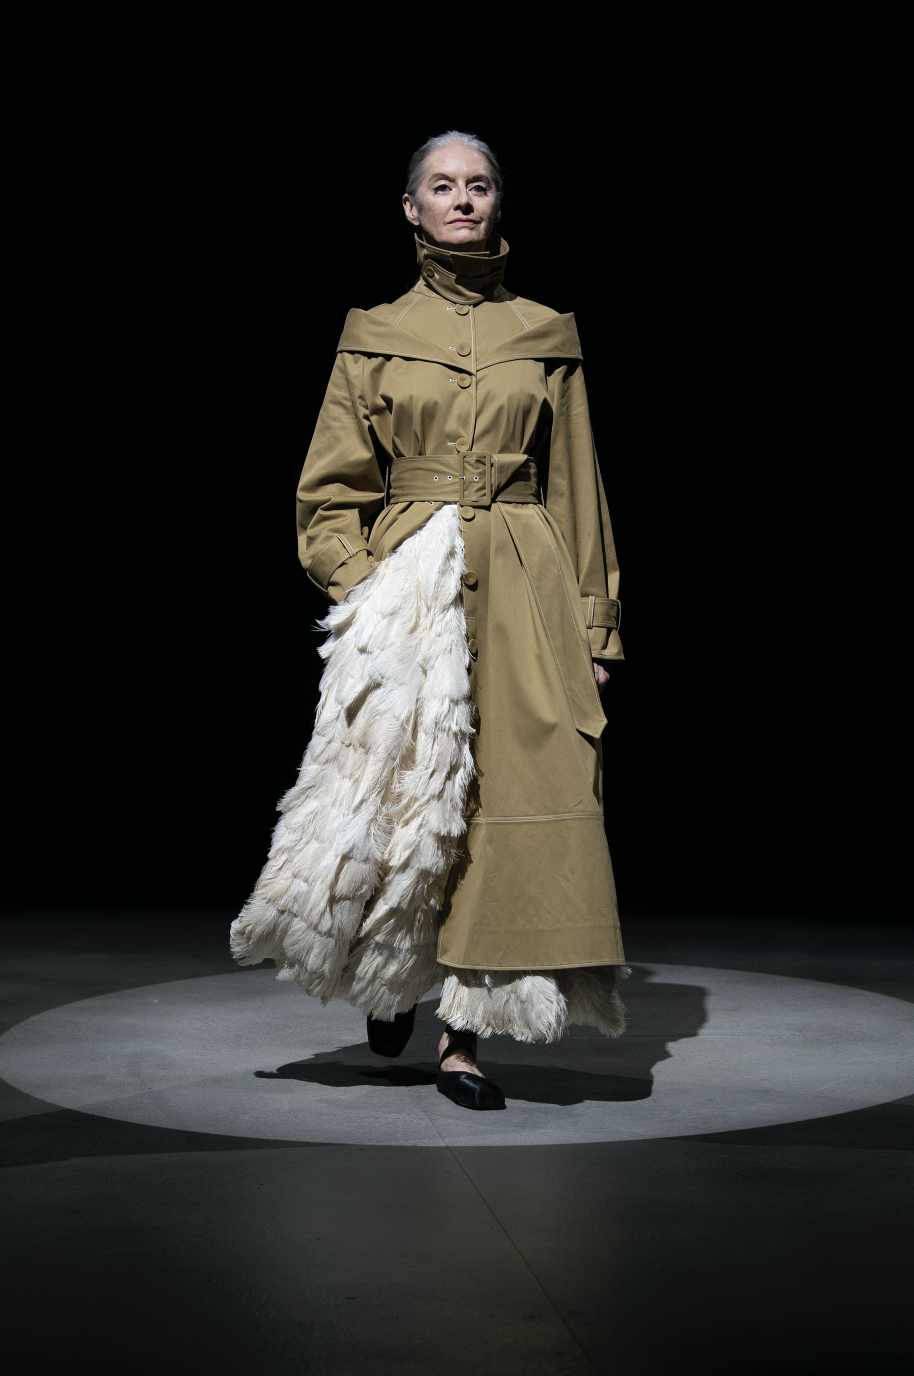 <p>This season, Erdem took us to the ballet—but it wasn't the tulle-skirted, blush-toned whimsy one would expect. Instead, we were taken backstage, on stage, in the wings, to rehearsals, and were even paid a visit from some ballet mistresses in strict tailoring. The designer looked at all sides of the art form, inspired by those in dance history that broke with convention. Margot Fonteyn, who danced with a partner almost two decades her junior in the '60s was a starting point for Erdem, who tapped four dancers past and present to walk on his collection stage. </p><p>Leggings, knits, and bralettes nodded to rehearsal dressing, while coats thrown over ostrich feather skirts were meant to feel like a dancer heading out after a performance with no time to change. There were some peacock moments as well: crystal-encrusted dresses, full skirts, and feathered headpieces called to the costumes of Swan Lake. Like many designers this season, Erdem seems to be reconsidering how we'll address dressing up post-lockdown; per his signature dark romance, his woman will do so elegantly—but with some edge. <em>—Carrie Goldberg</em></p>